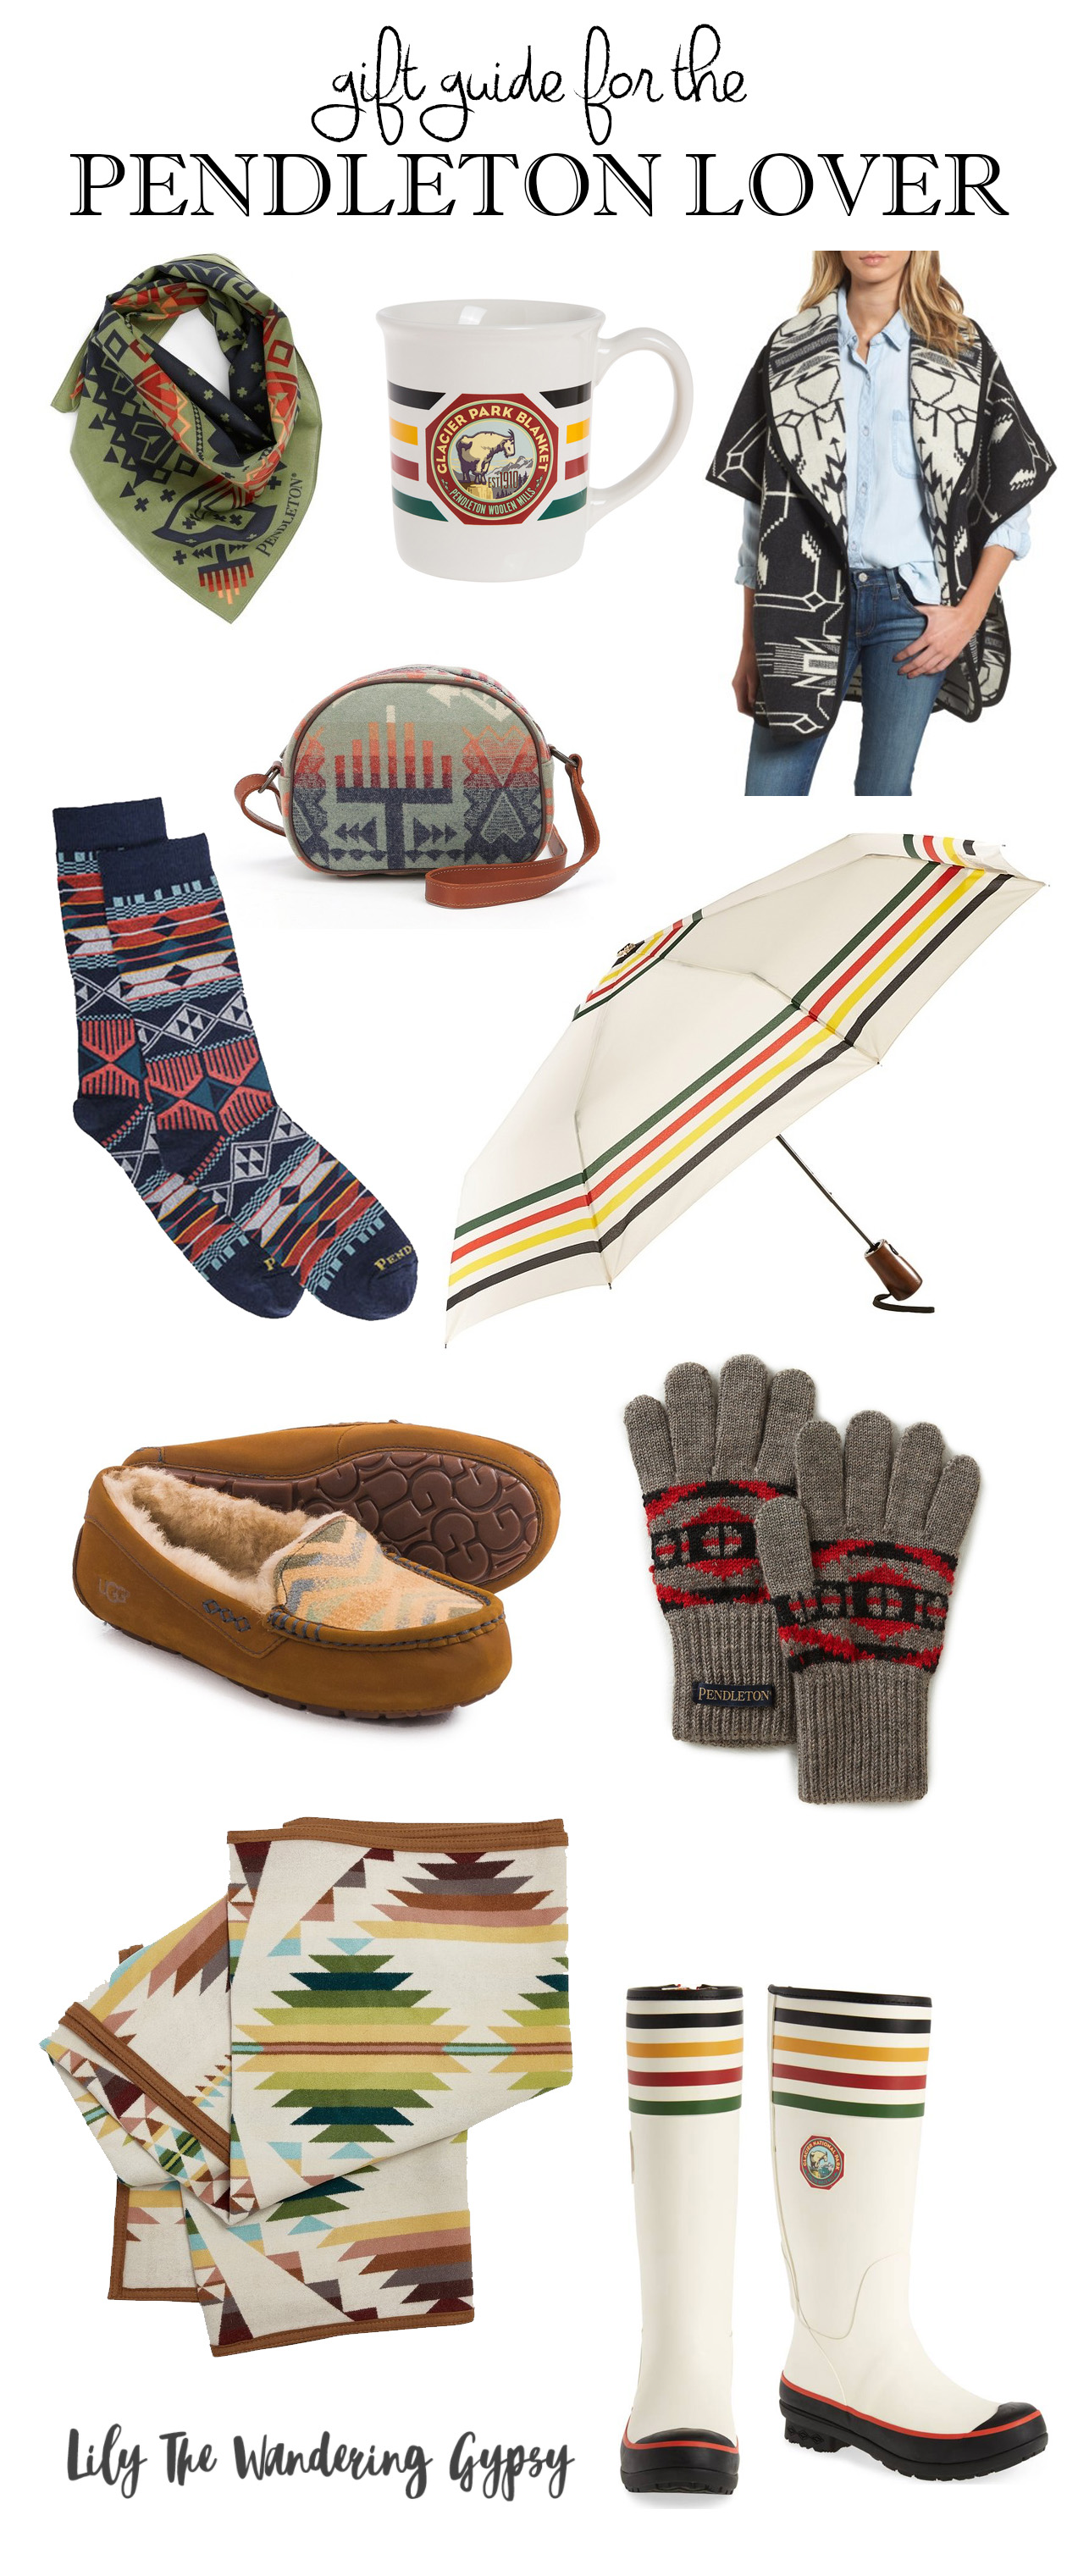 Gift Guide For The Pendleton Lover!